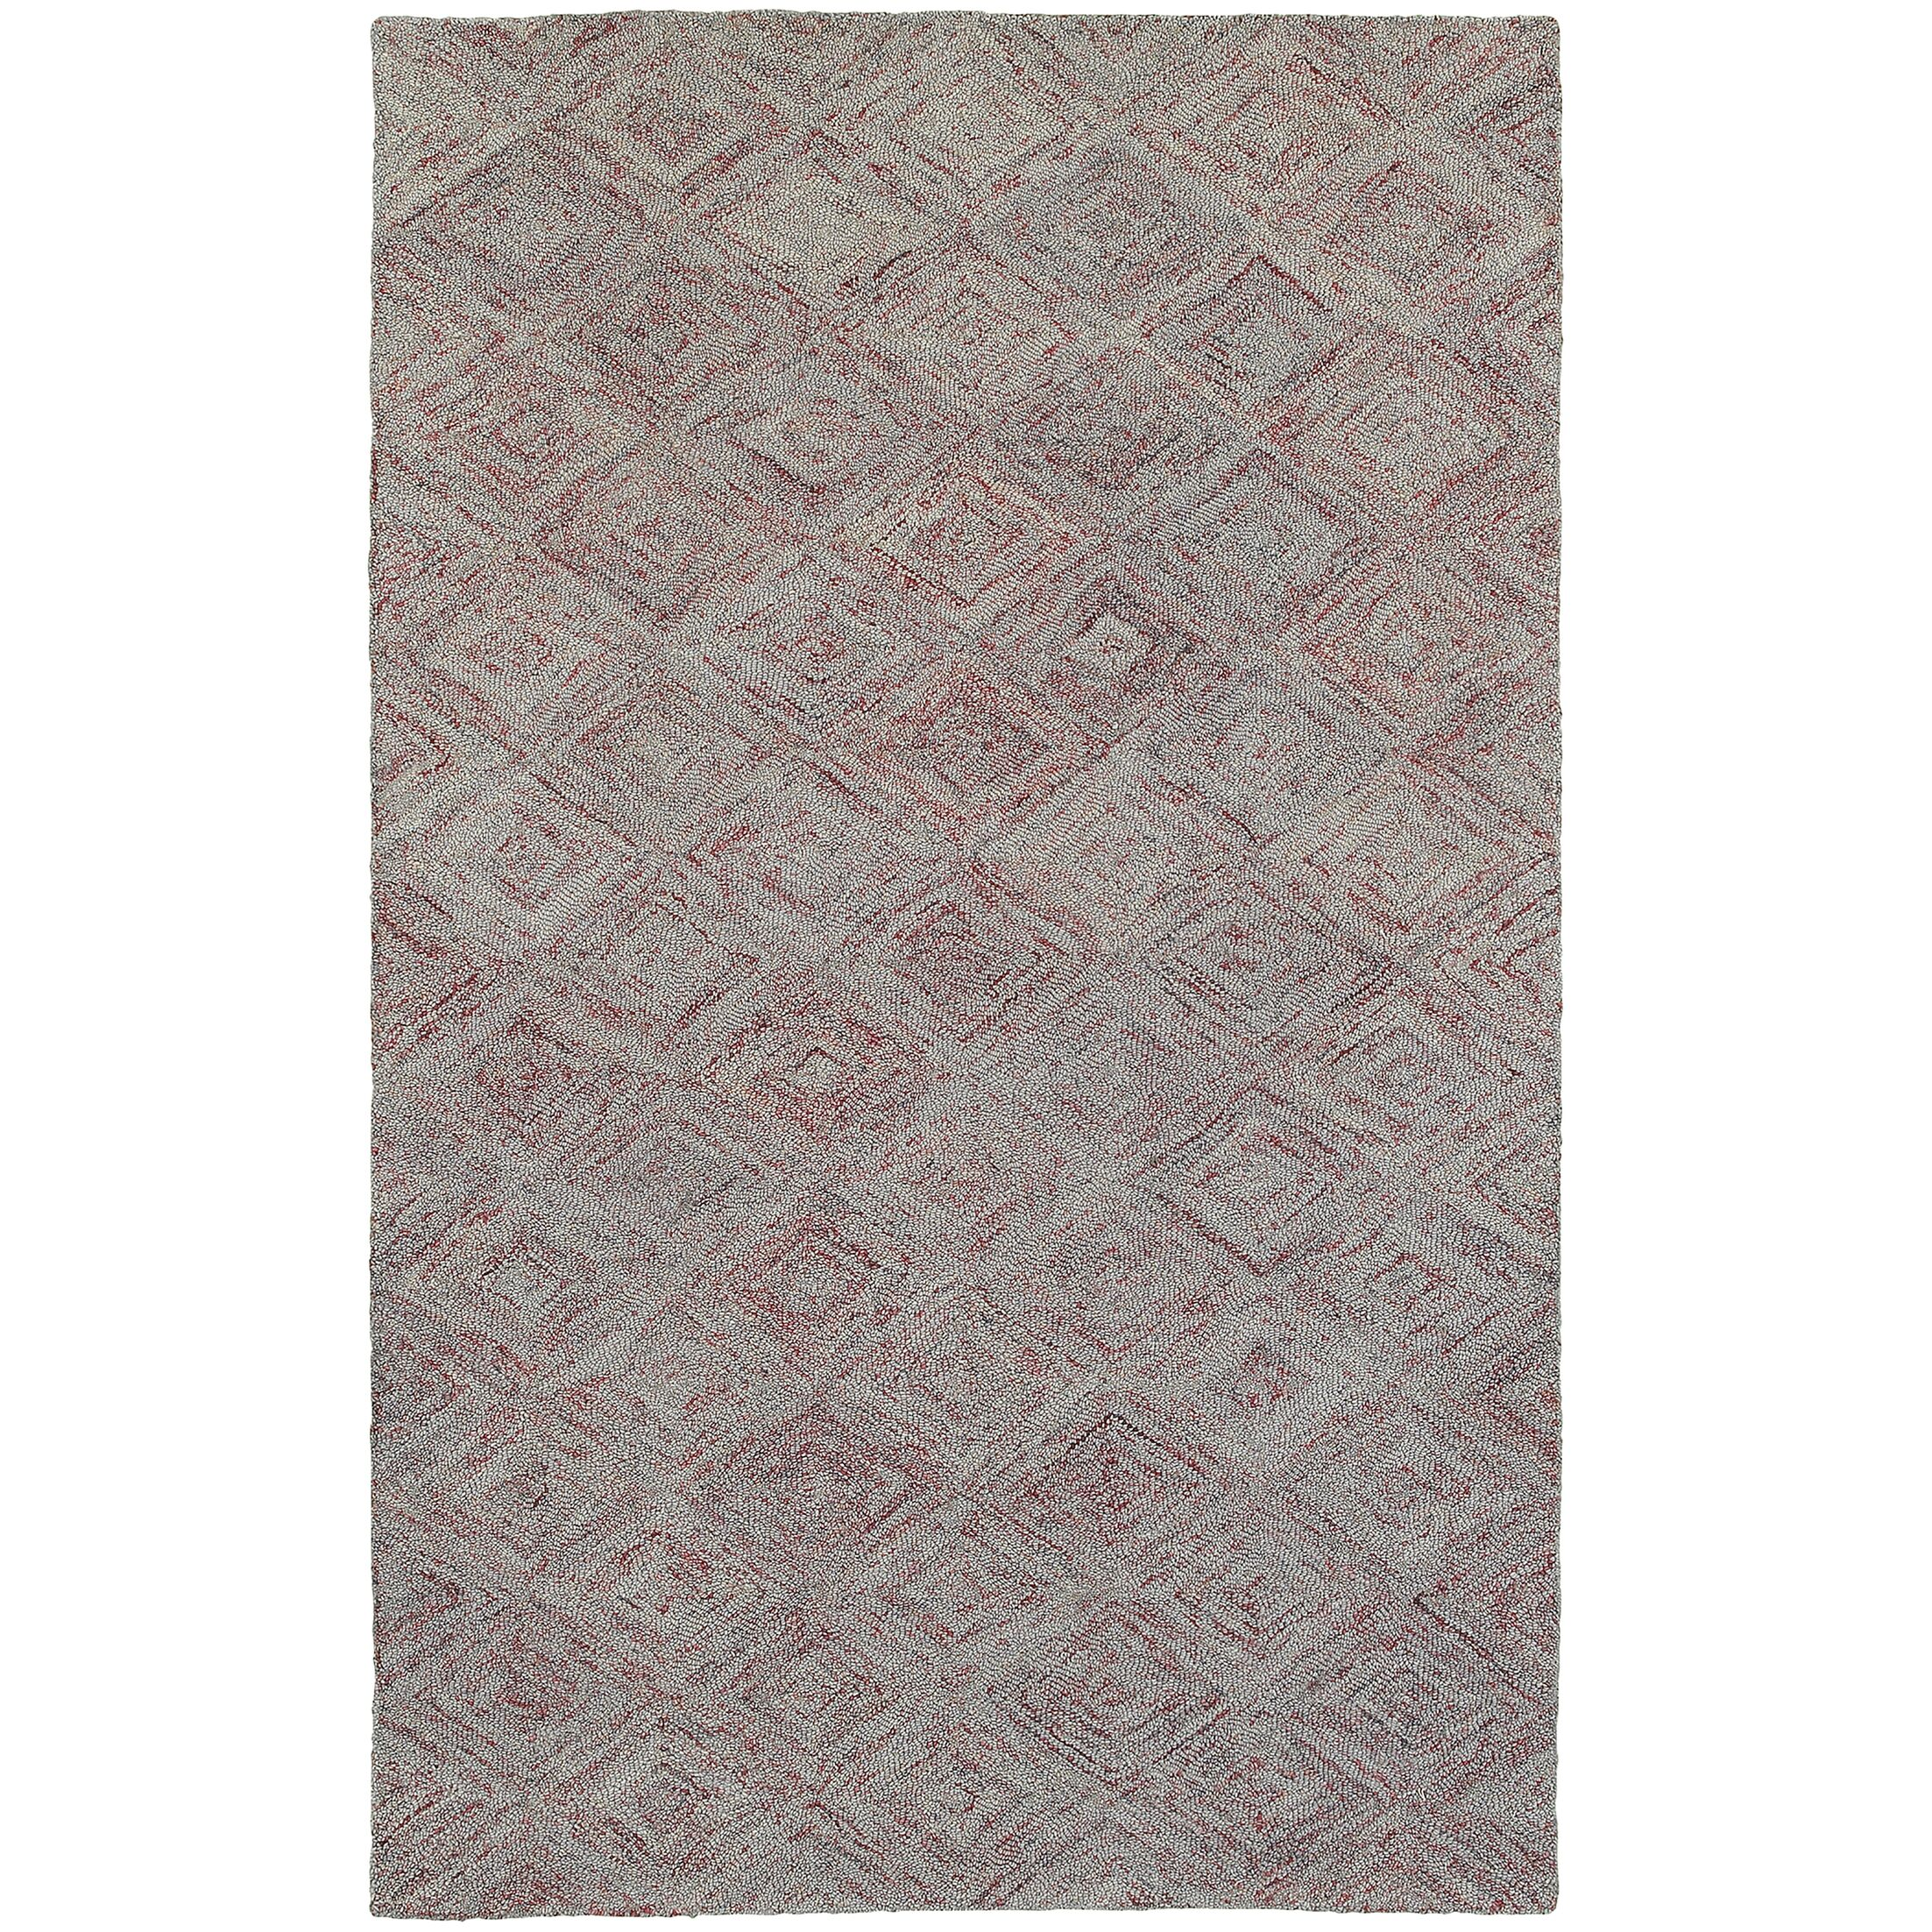 Colorscape Hand-Tufted Geometric Rust/Gray Area Rug Rug Size: Rectangle 5' x 8'